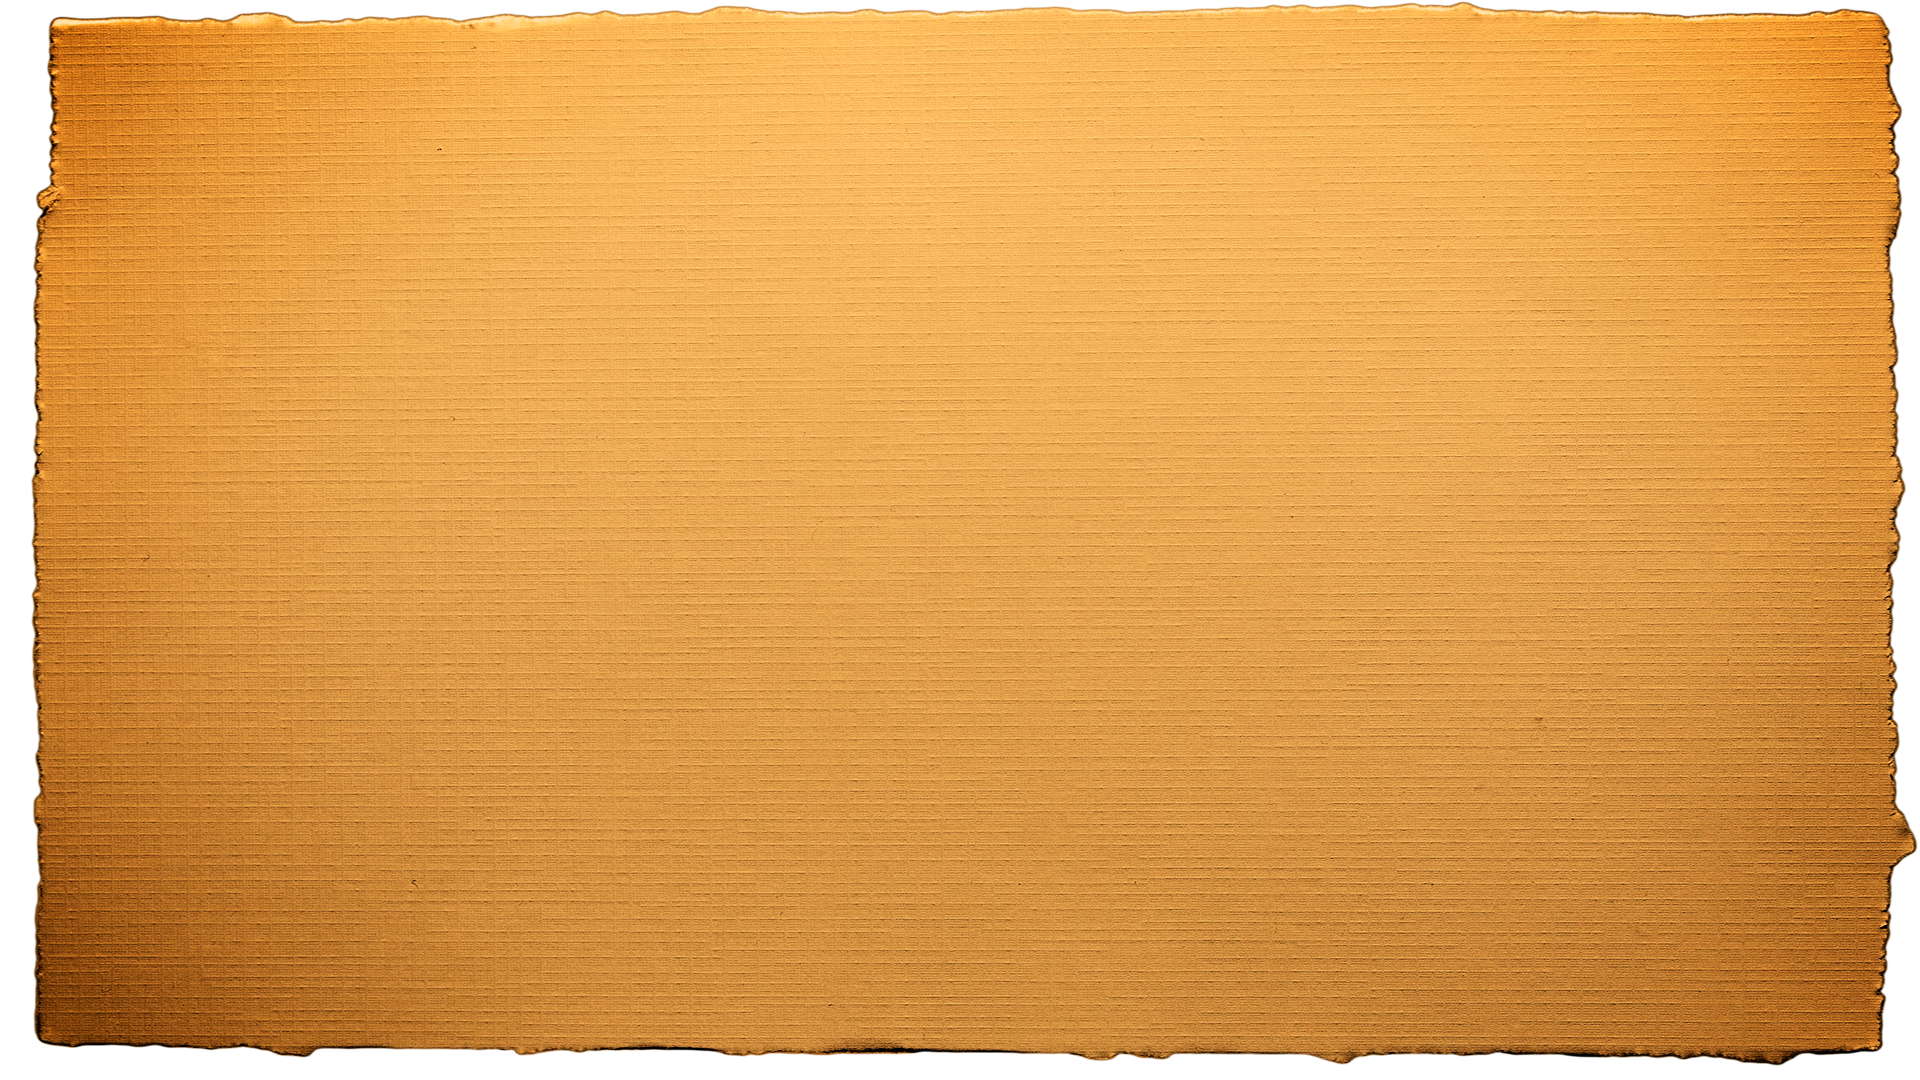 Yellow-Orange Torn Paper Background HD